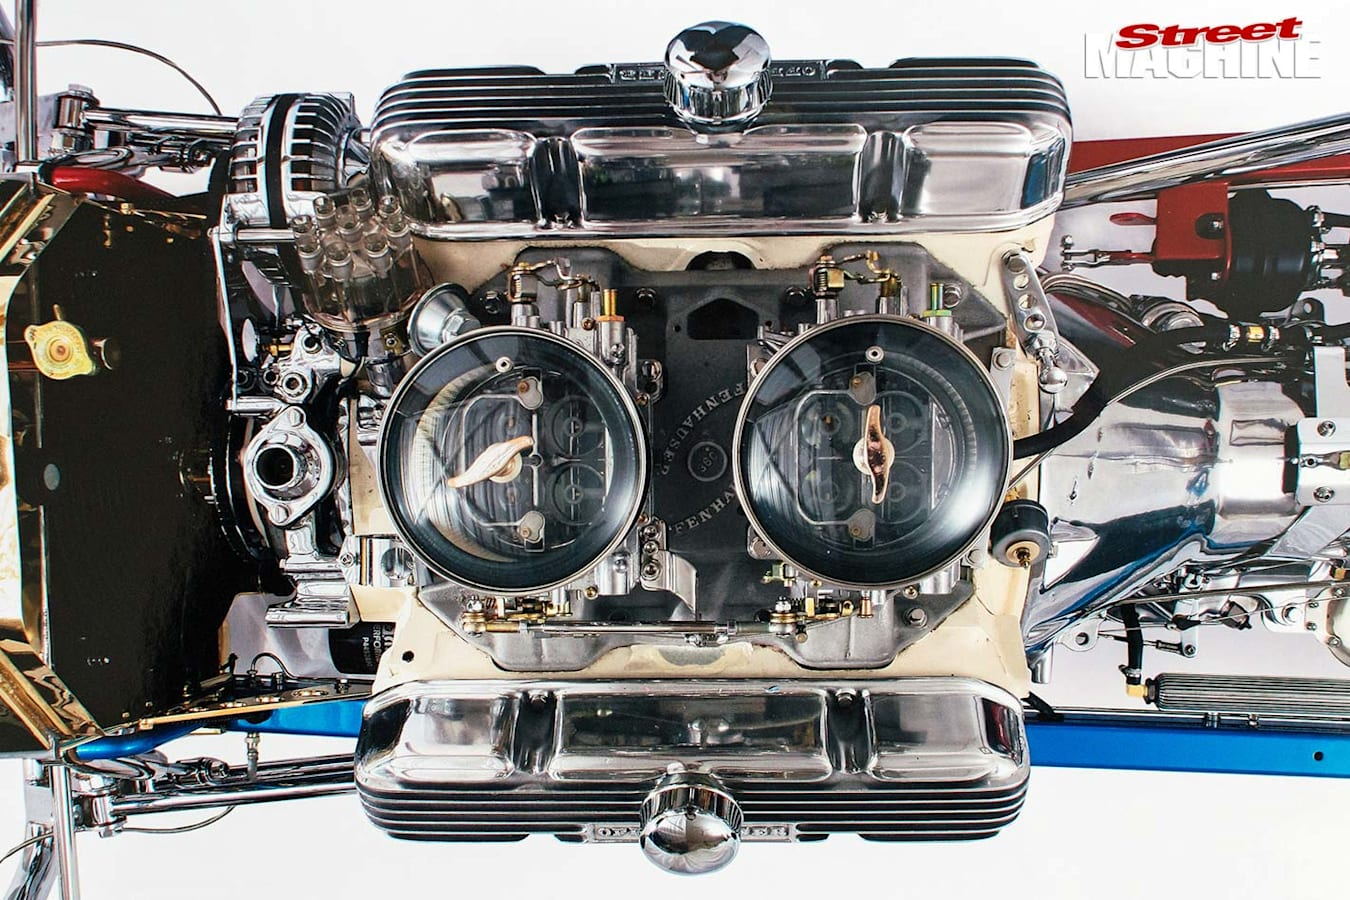 Ford T-Bucket engine